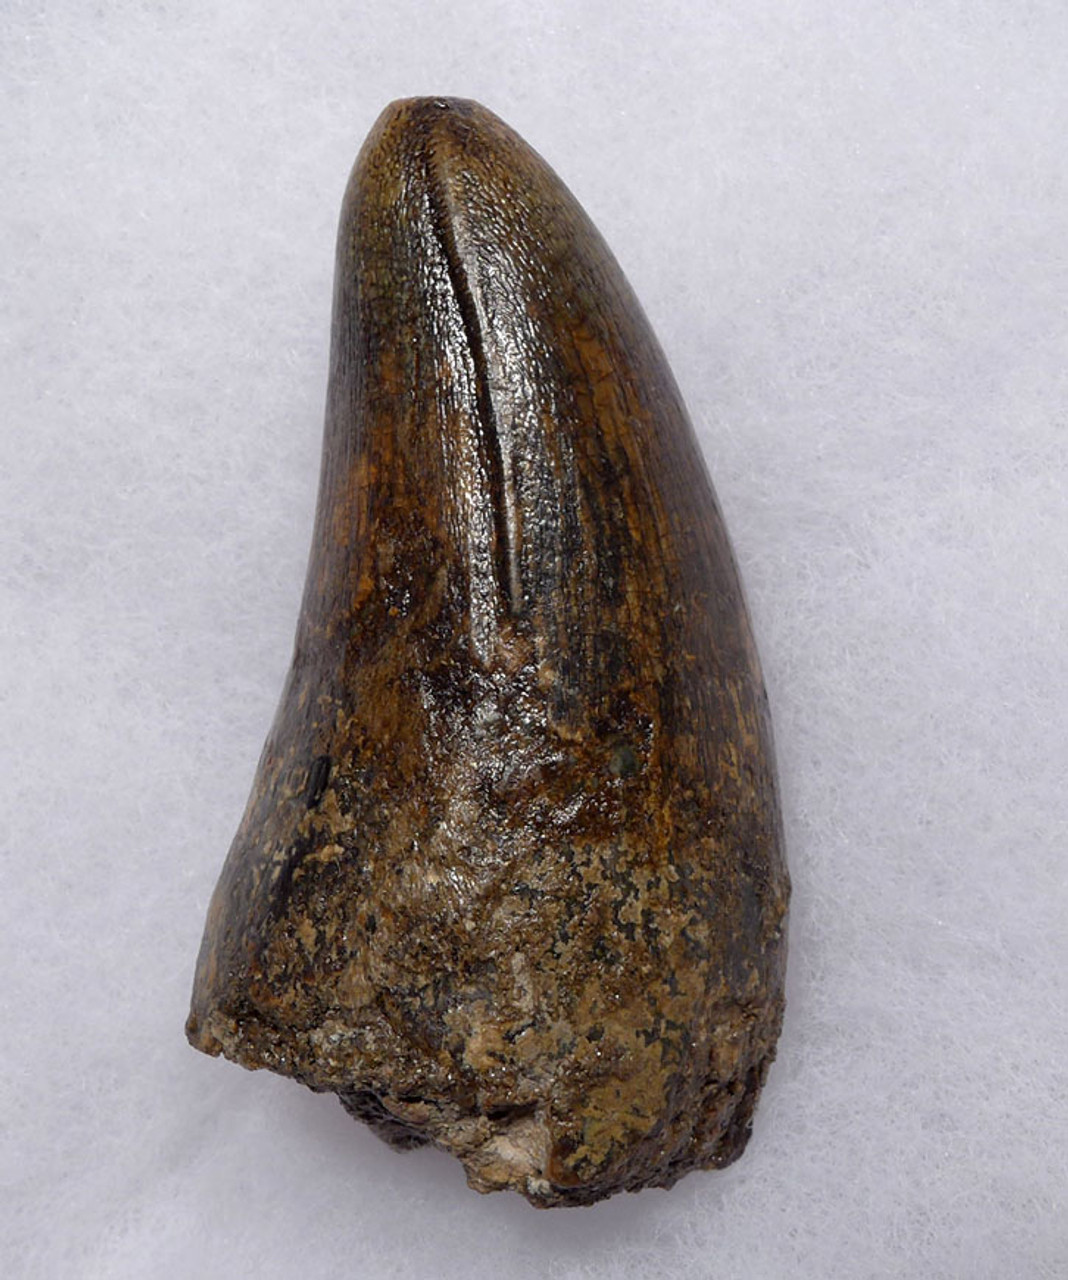 CROC048 - OUR LARGEST AND FINEST FOSSIL TOOTH FROM A JAVA MAN KILLER PREHISTORIC CROCODILE OF THE FAMOUS HOMO ERECTUS DEPOSITS OF SOLO RIVER INDONESIA